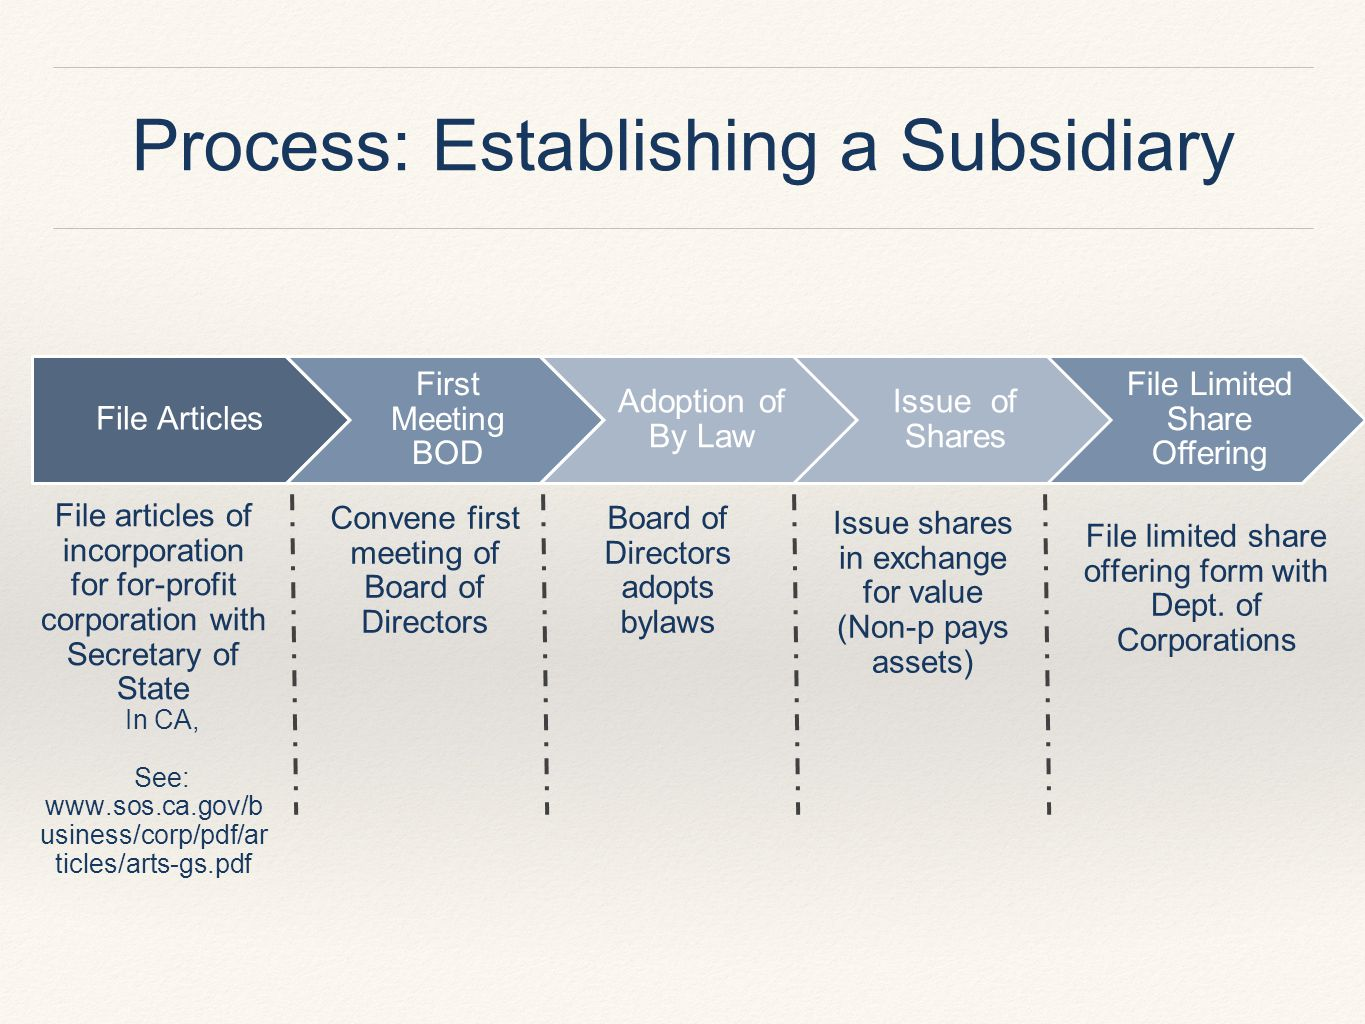 Process: Establishing a Subsidiary File Articles First Meeting BOD Adoption of By Law Issue of Shares File Limited Share Offering File articles of incorporation for for-profit corporation with Secretary of State In CA, See: www.sos.ca.gov/b usiness/corp/pdf/ar ticles/arts-gs.pdf Convene first meeting of Board of Directors Board of Directors adopts bylaws Issue shares in exchange for value (Non-p pays assets) File limited share offering form with Dept.